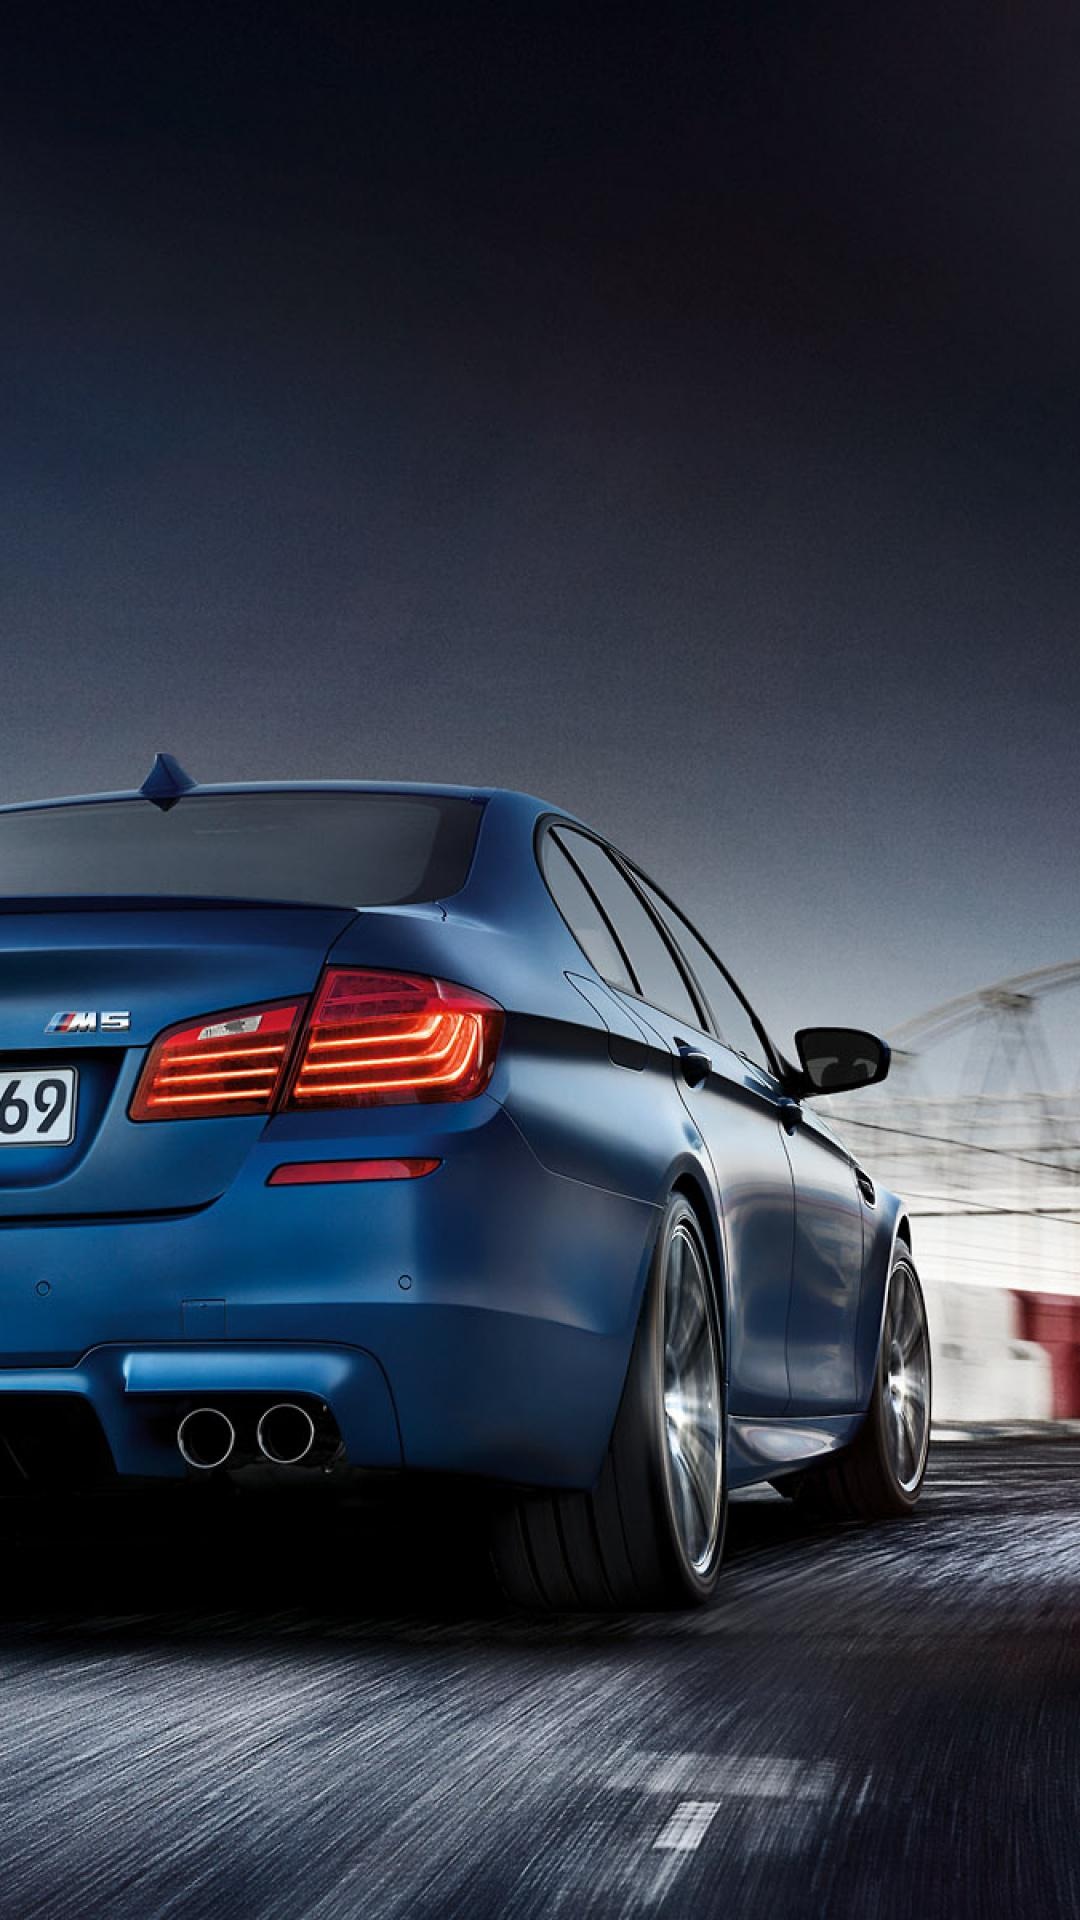 Bmw Logo Wallpaper X Hd Wallpapers Bmw Wallpaper Bmw M5 Background Phone 1080x1920 Wallpaper Teahub Io